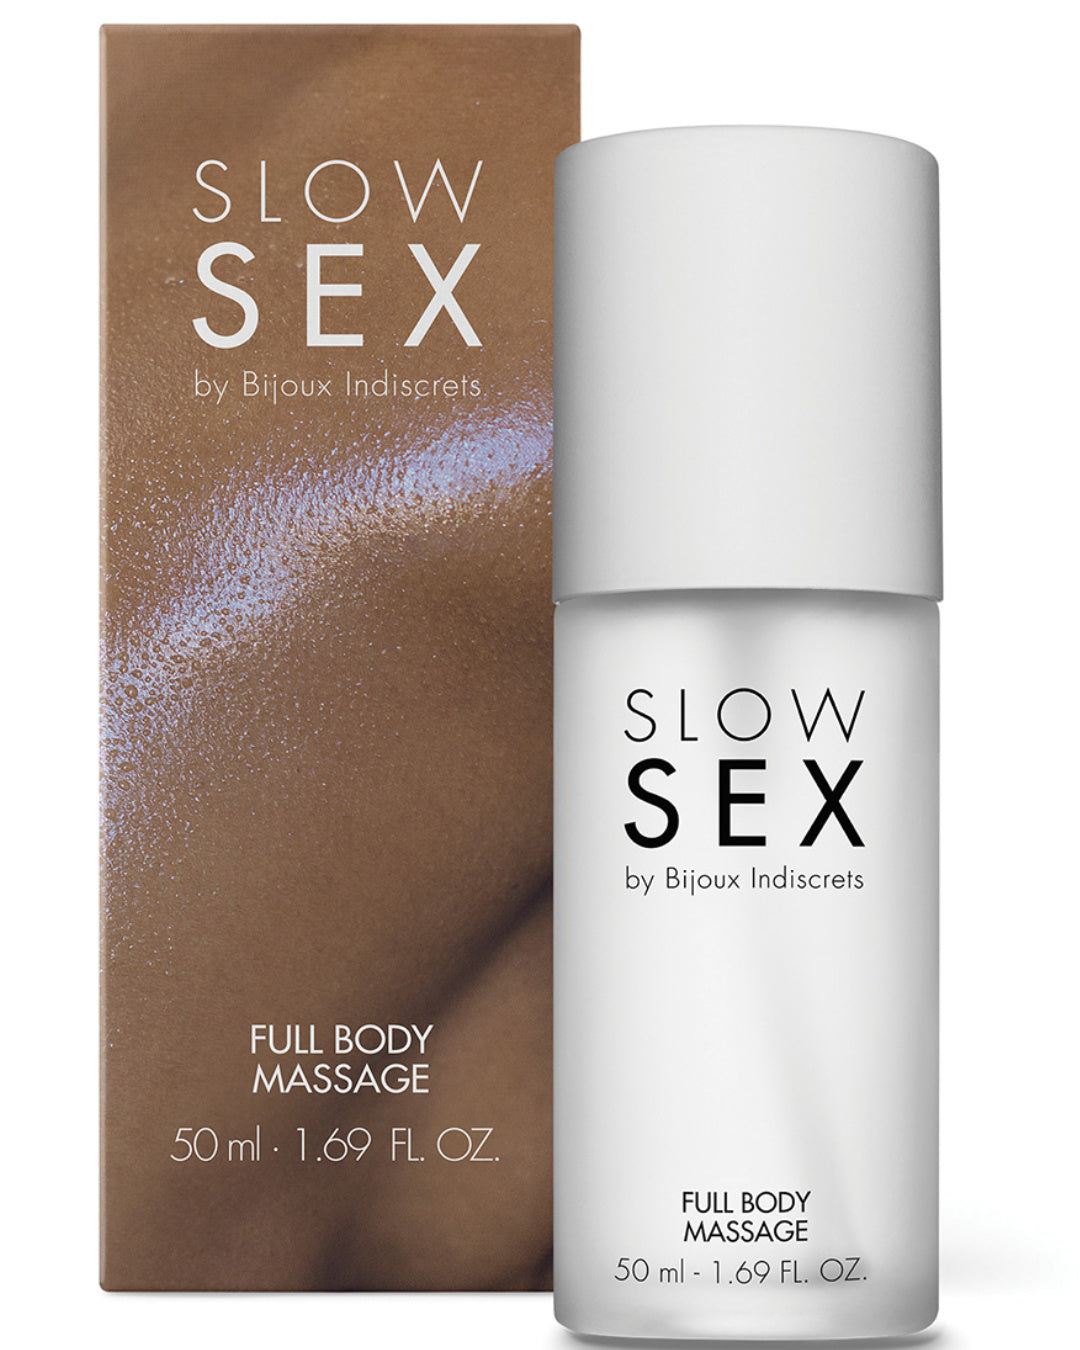 Bijoux Indiscrets Slow Sex Full Body Massage Gel product next to box